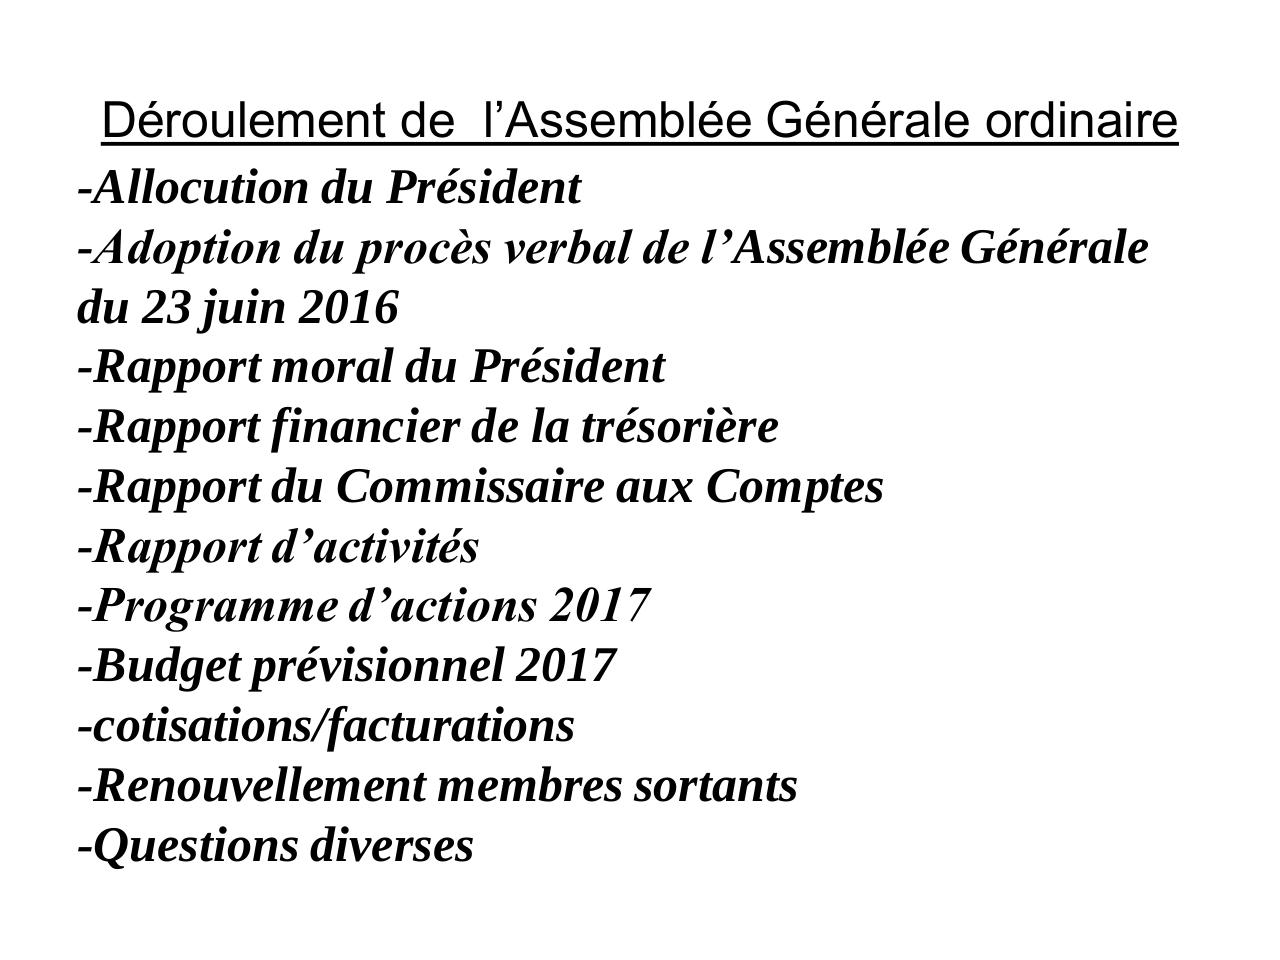 Office Territorial des Sports AG 23 juin 2016 finale.pdf - page 2/42